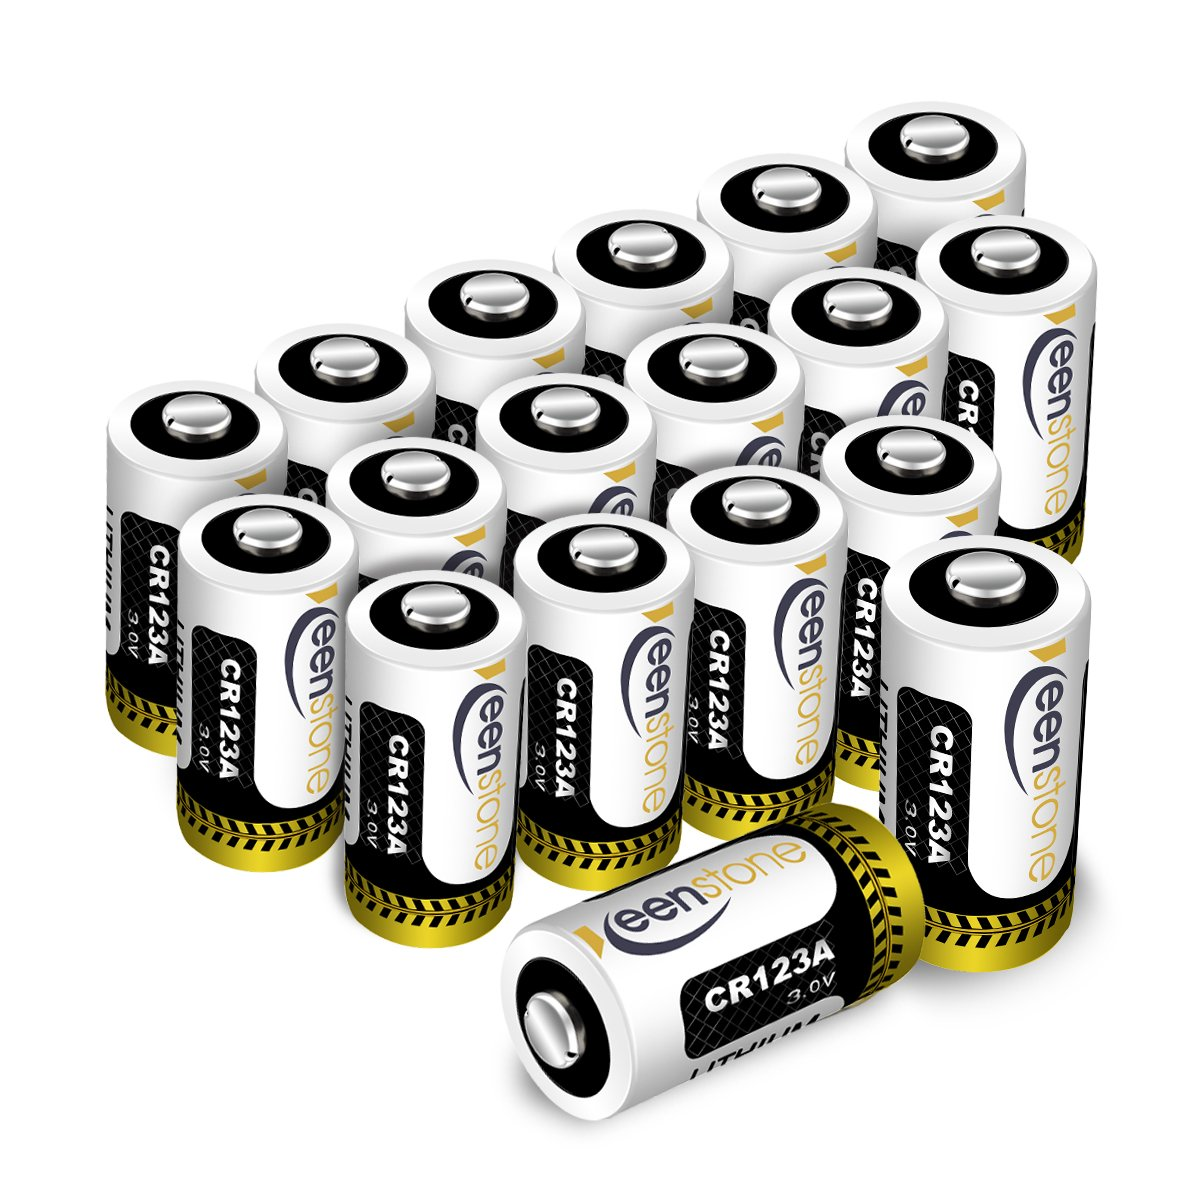 [UL Certified] CR123A 3v Lithium Battery, Keenstone 1600mAh 18pack Primary Lithium Batteries CR123A Batteries for Flashlight Torch Microphones(Not Compatible with Arlo Cameras)